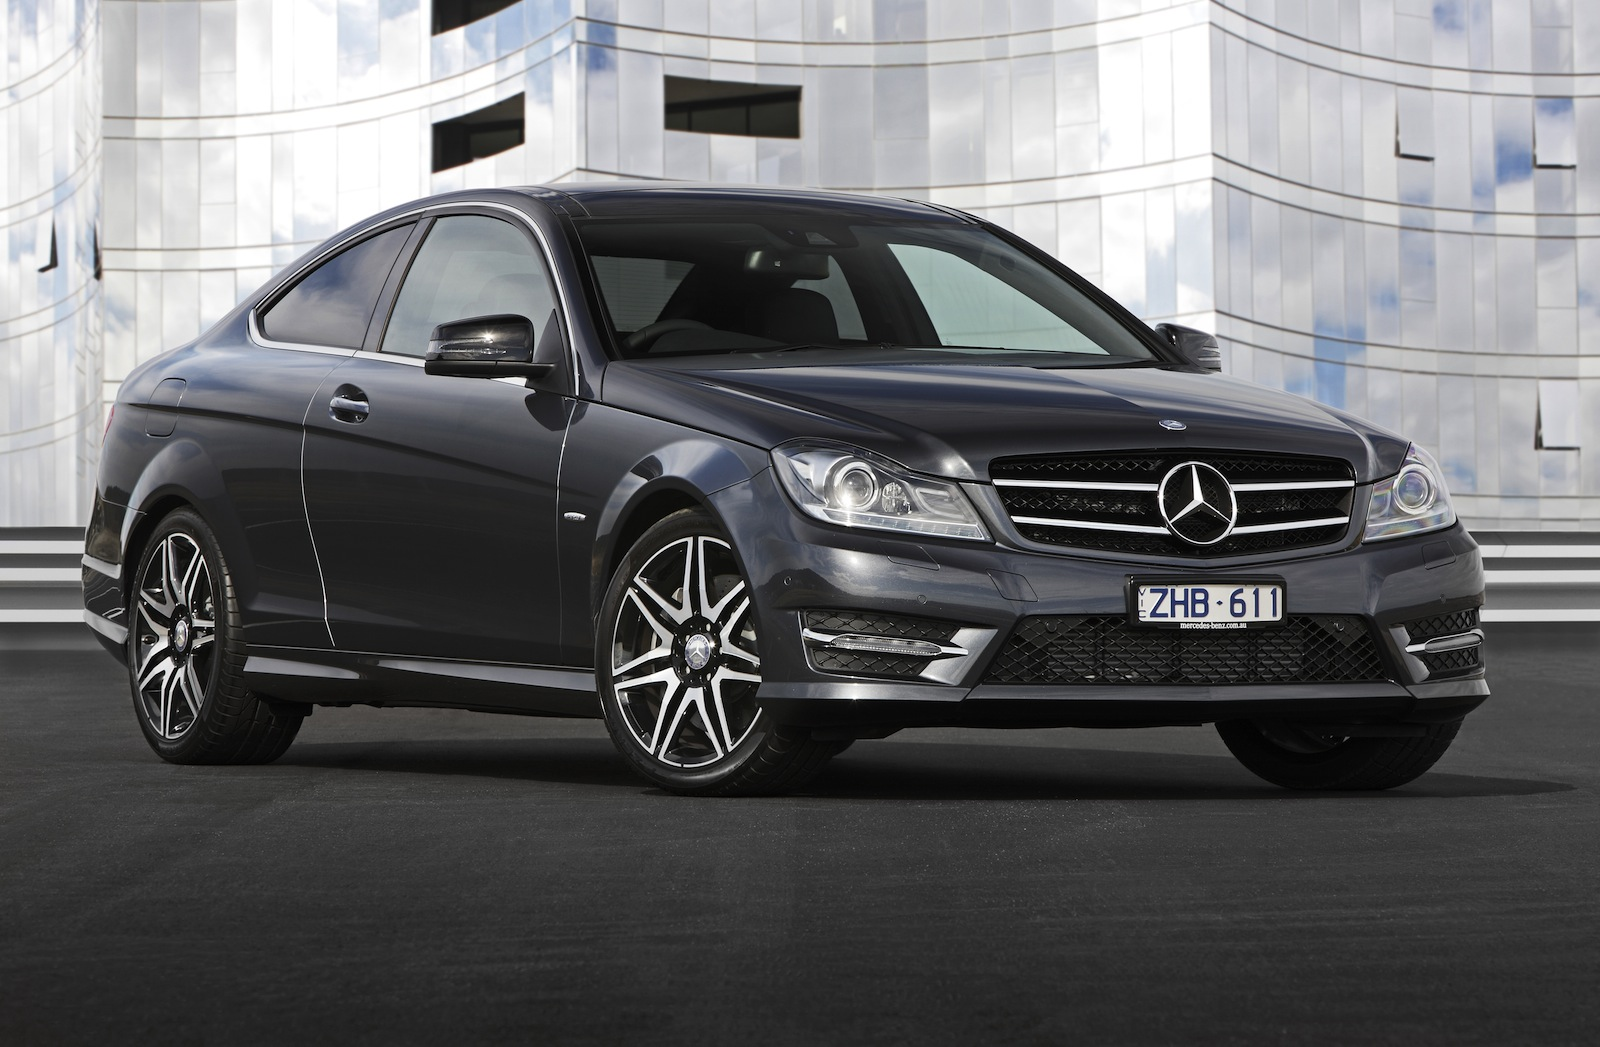 Mercedes Benz C250 Coupe Sport Review Photos Caradvice